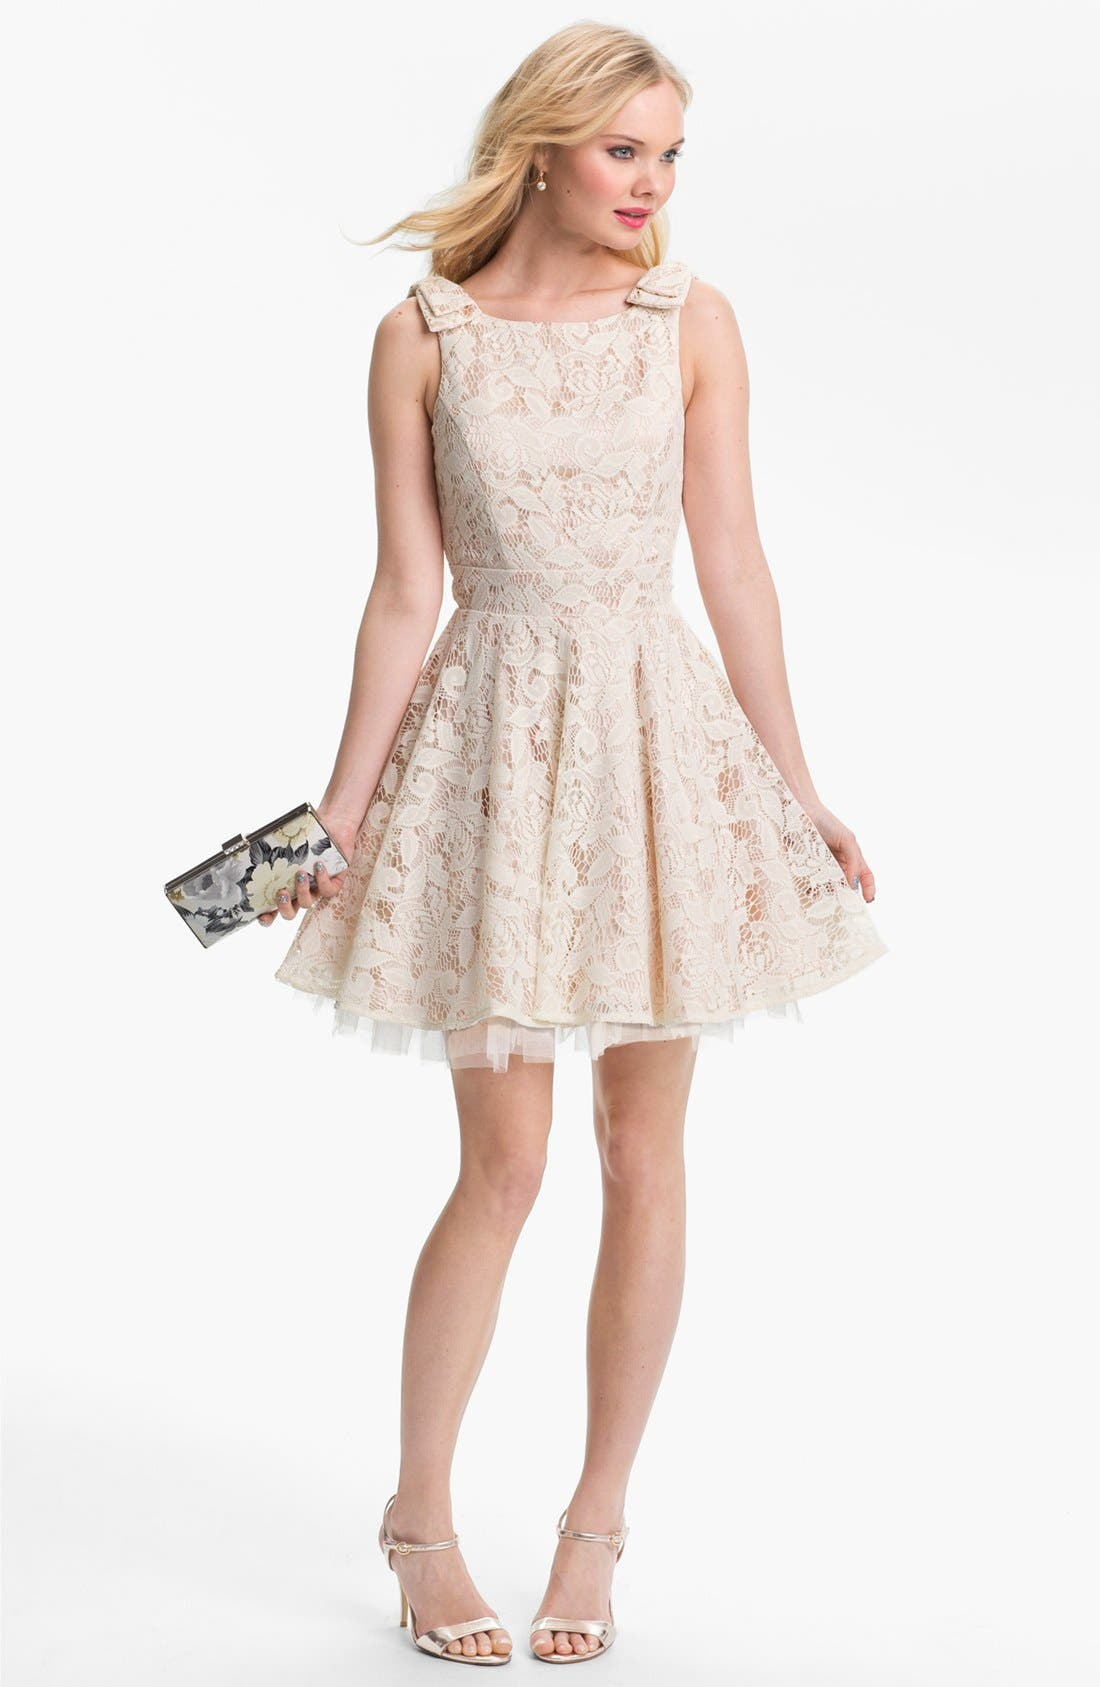 Alternate Image 1 Selected - Way-In Lace Skater Dress & Accessories